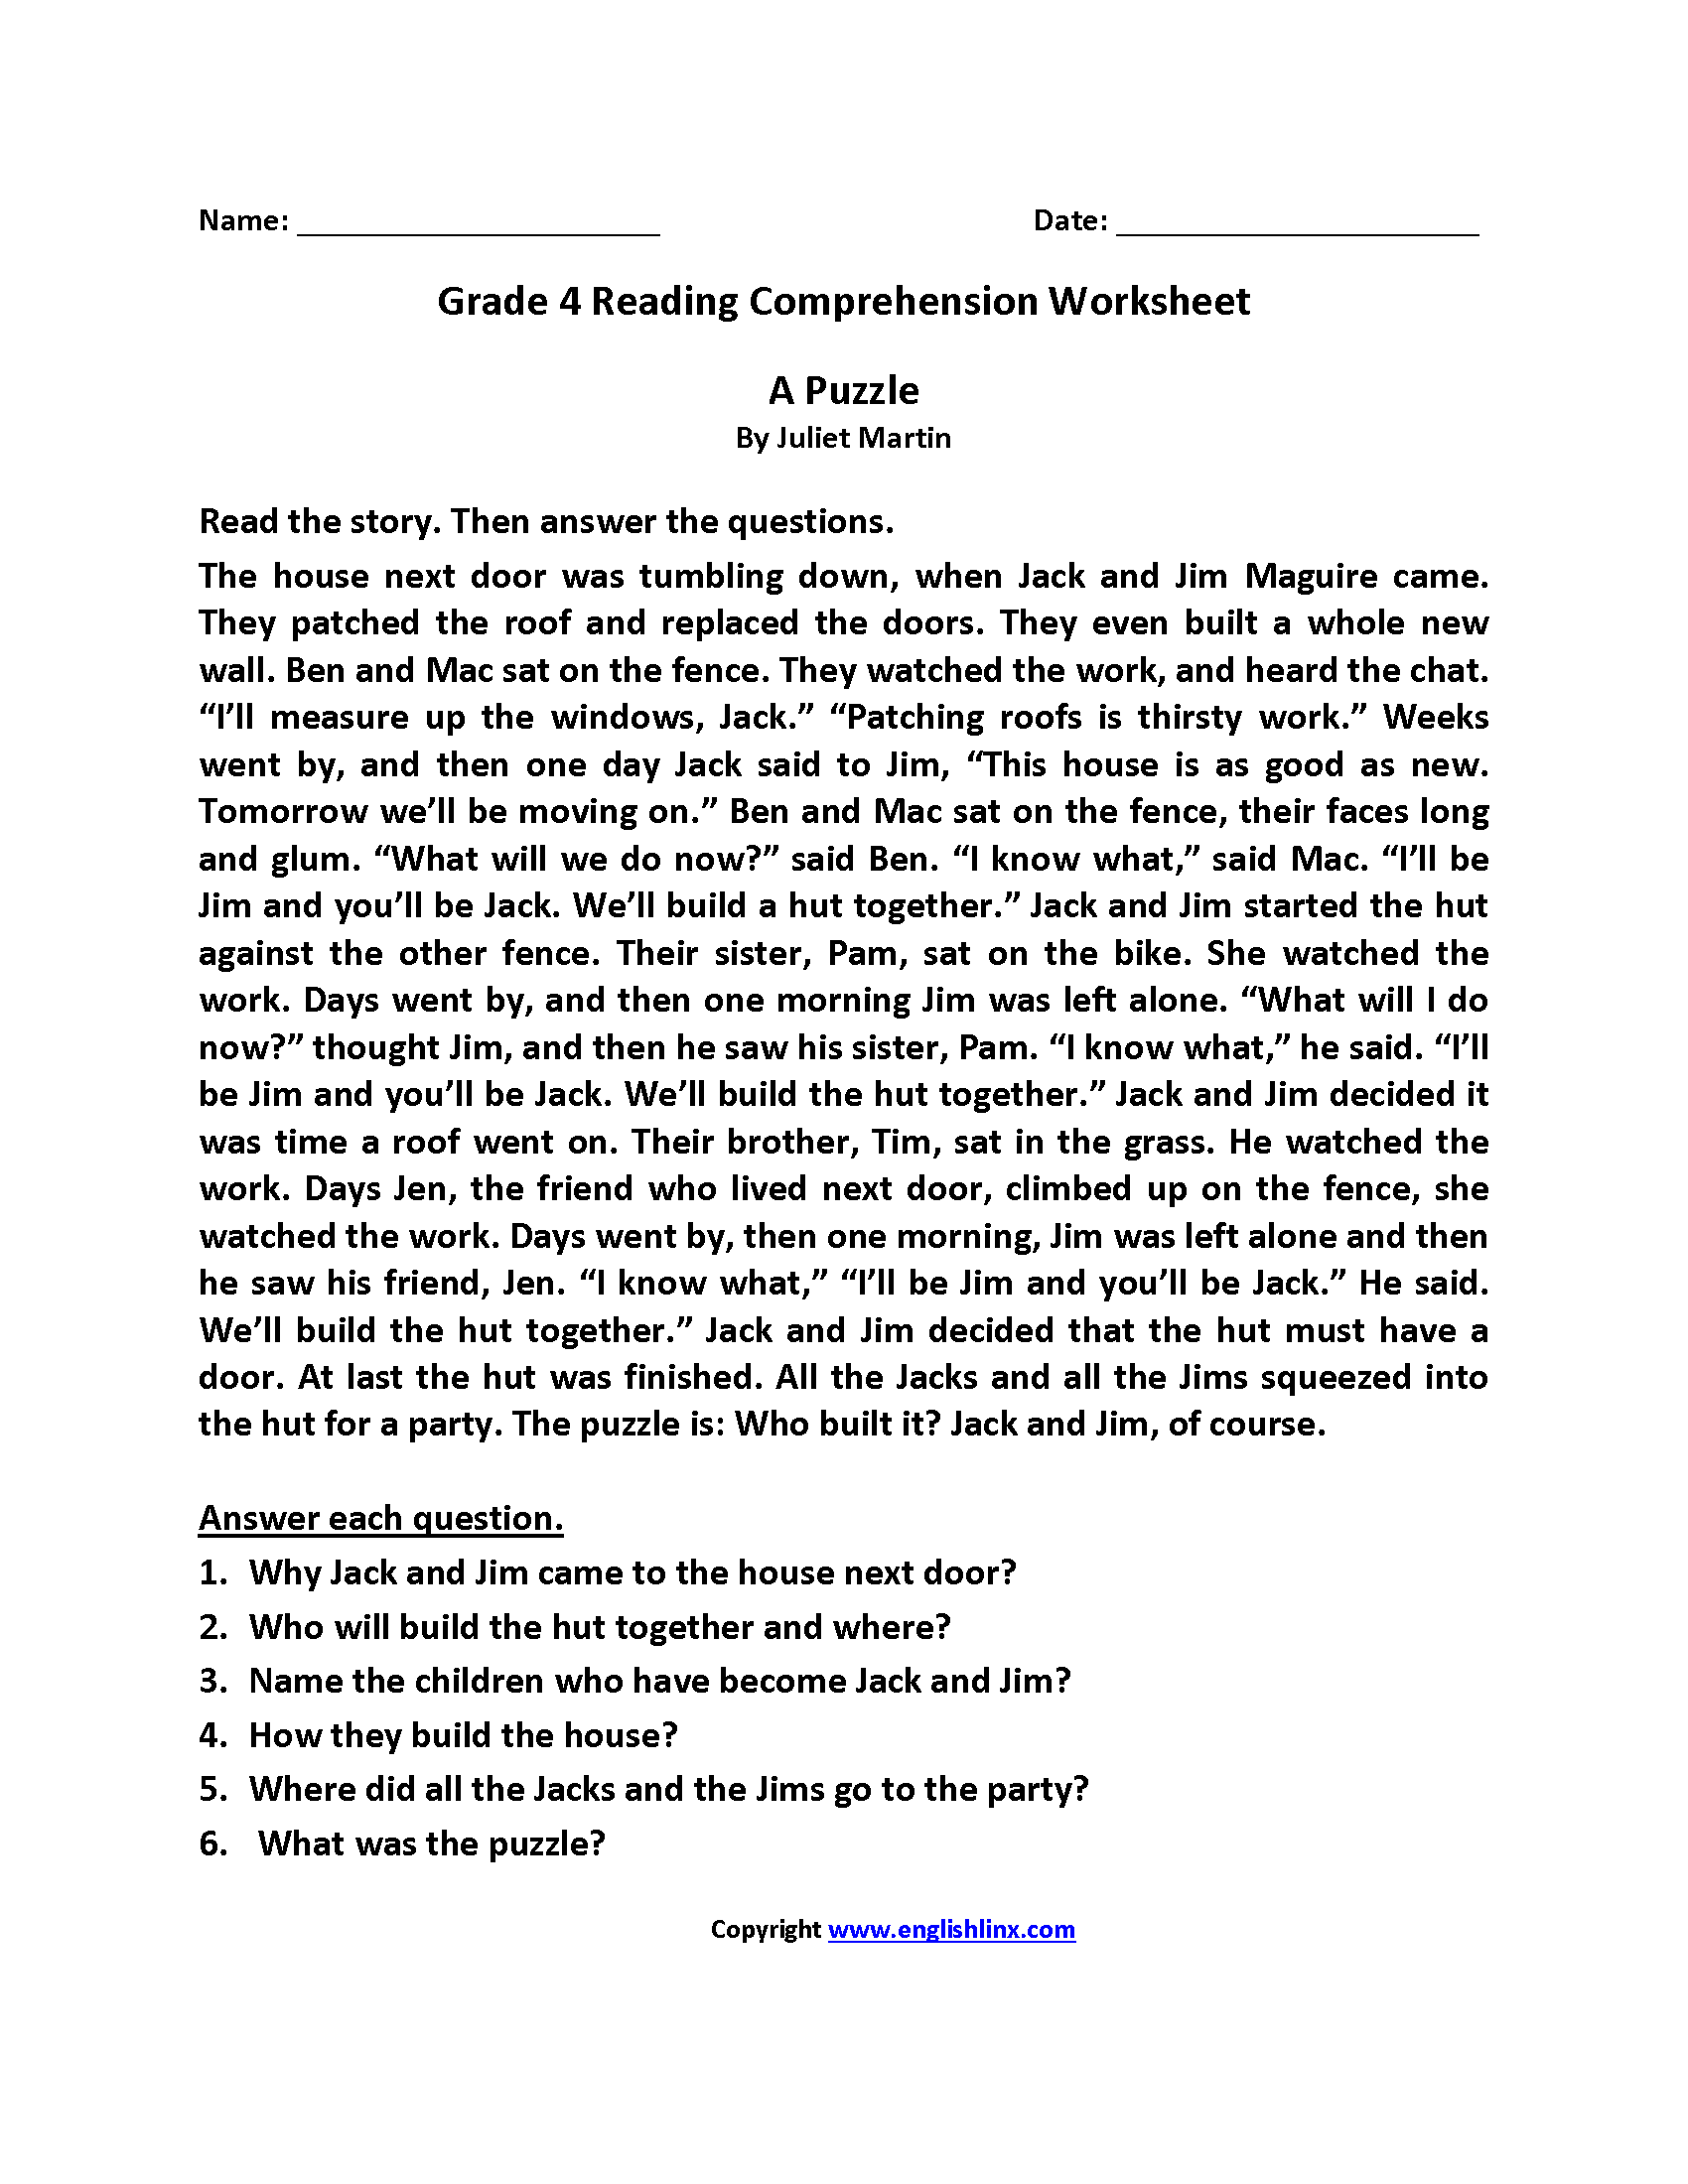 Worksheets Reading Comprehension Worksheets For 4th Grade reading worksheets fourth grade worksheets